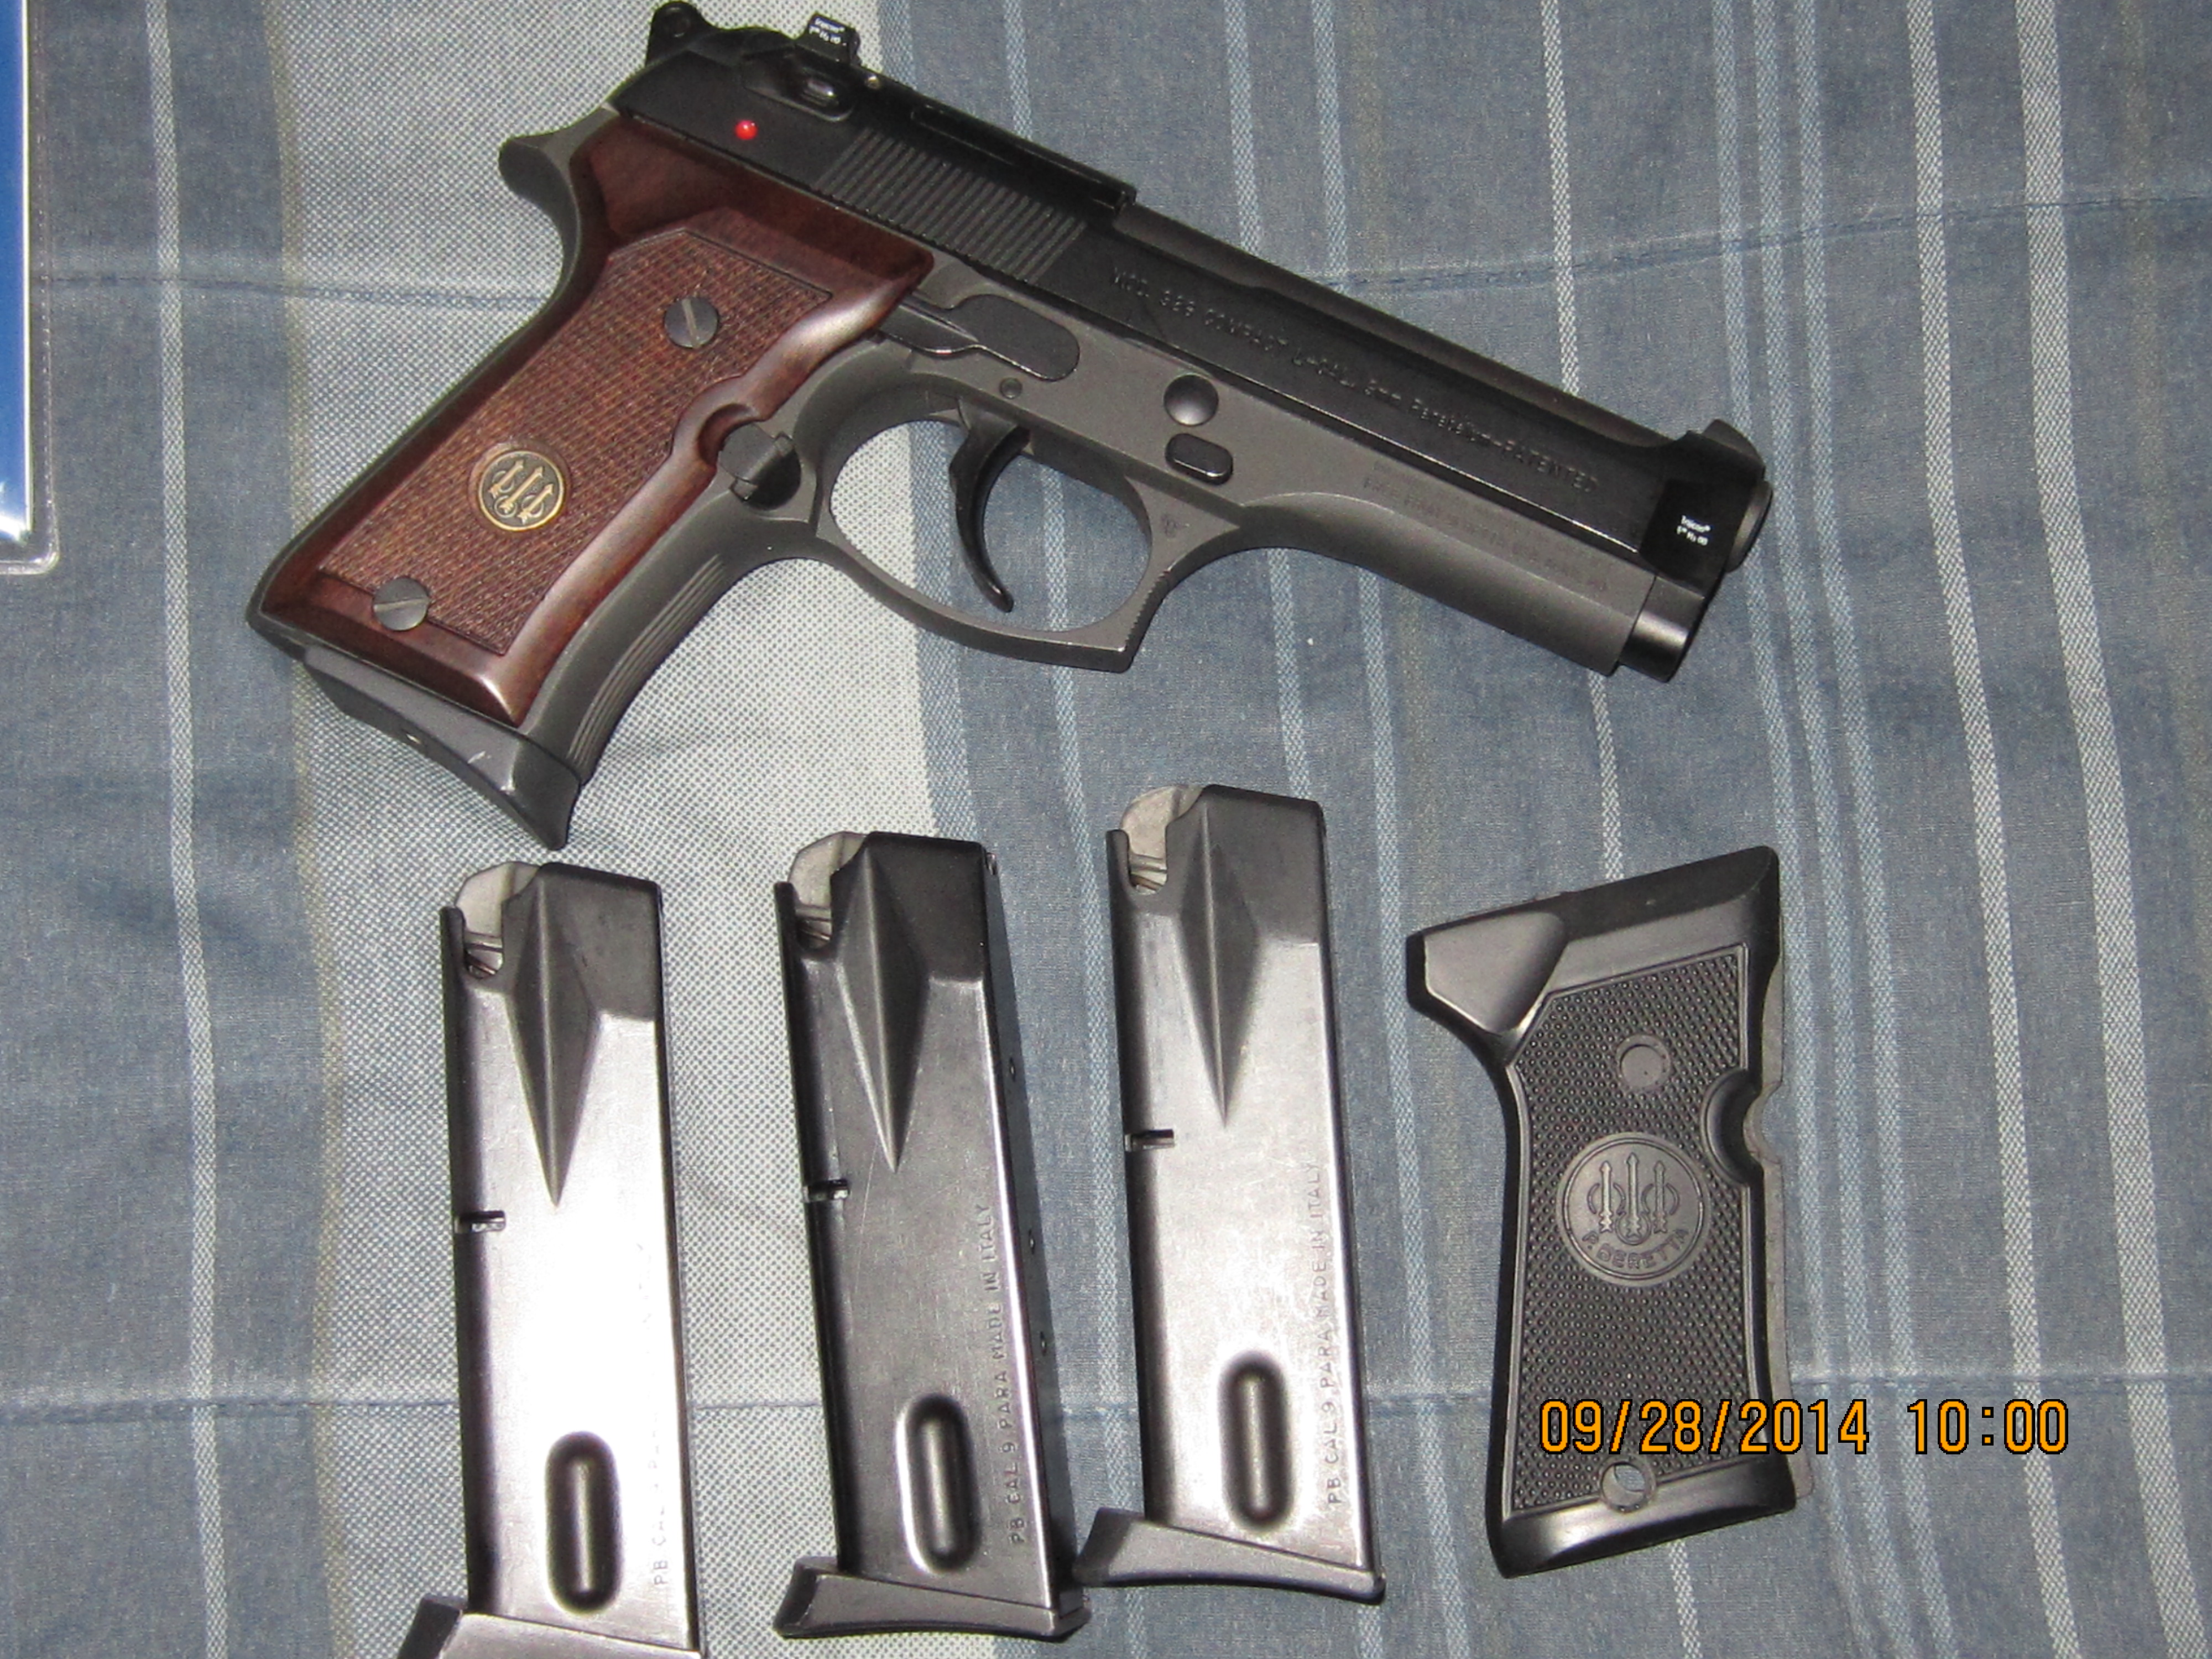 Do active shooter incident like El Paso make you reconsider your CCW choices?-img_0608-1-.jpg